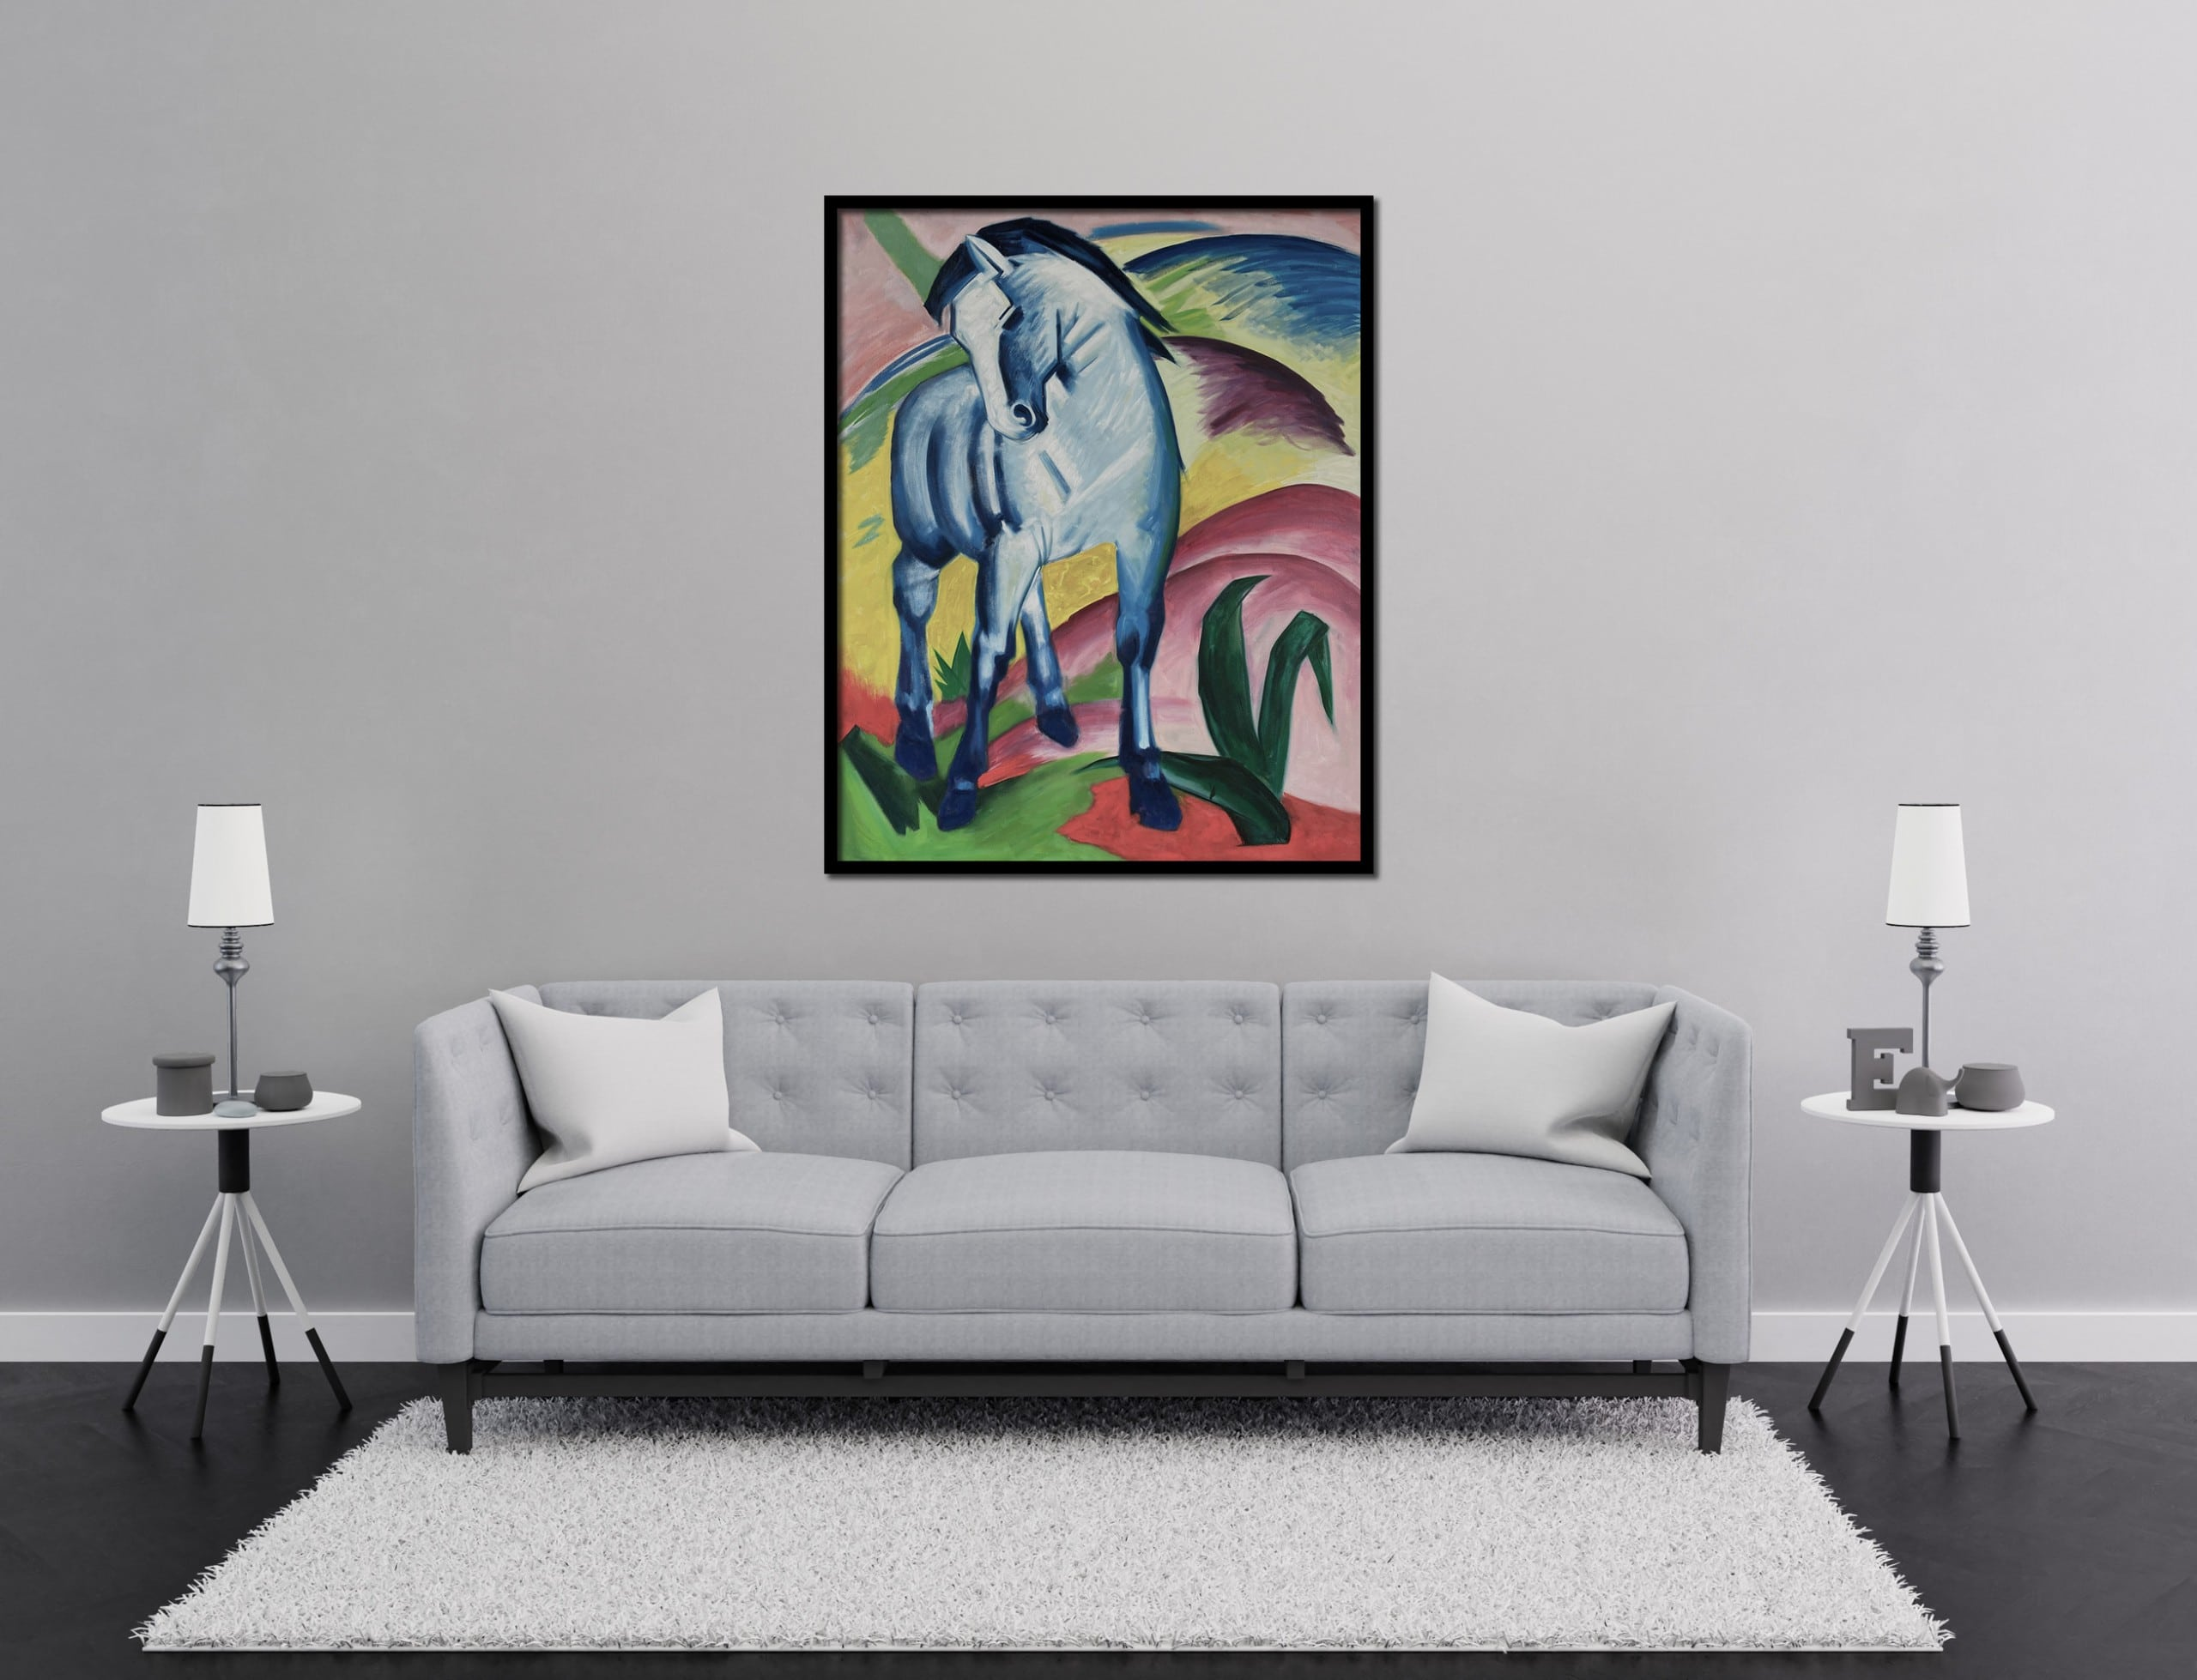 Blue Horse Painting Franz Marc Oil On Canvas Reproduction